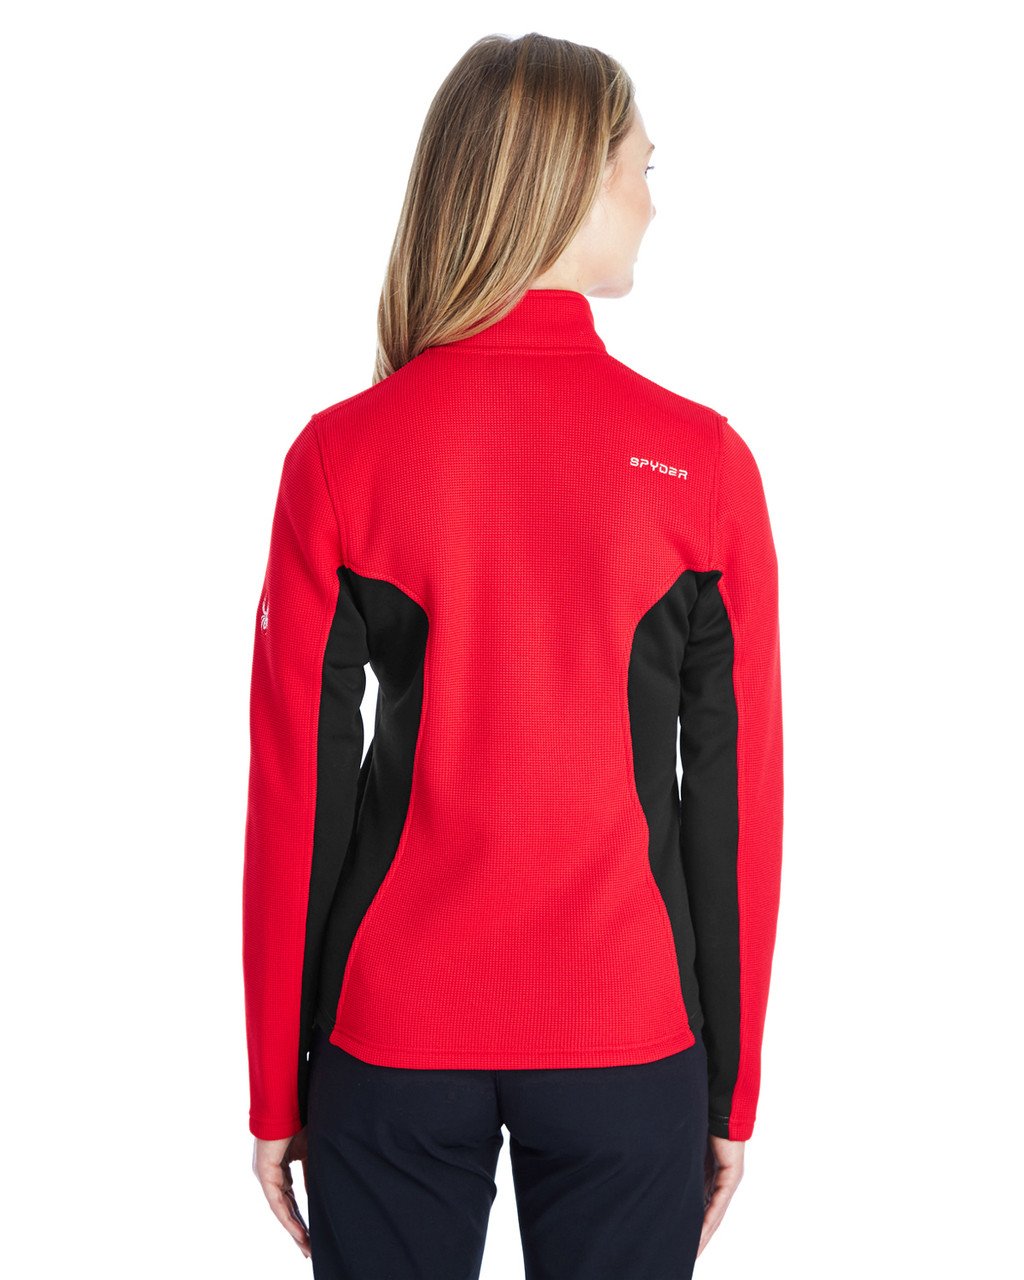 Red/Black/White, Back - 187335 Spyder Ladies' Constant Full-Zip Sweater | BlankClothing.ca